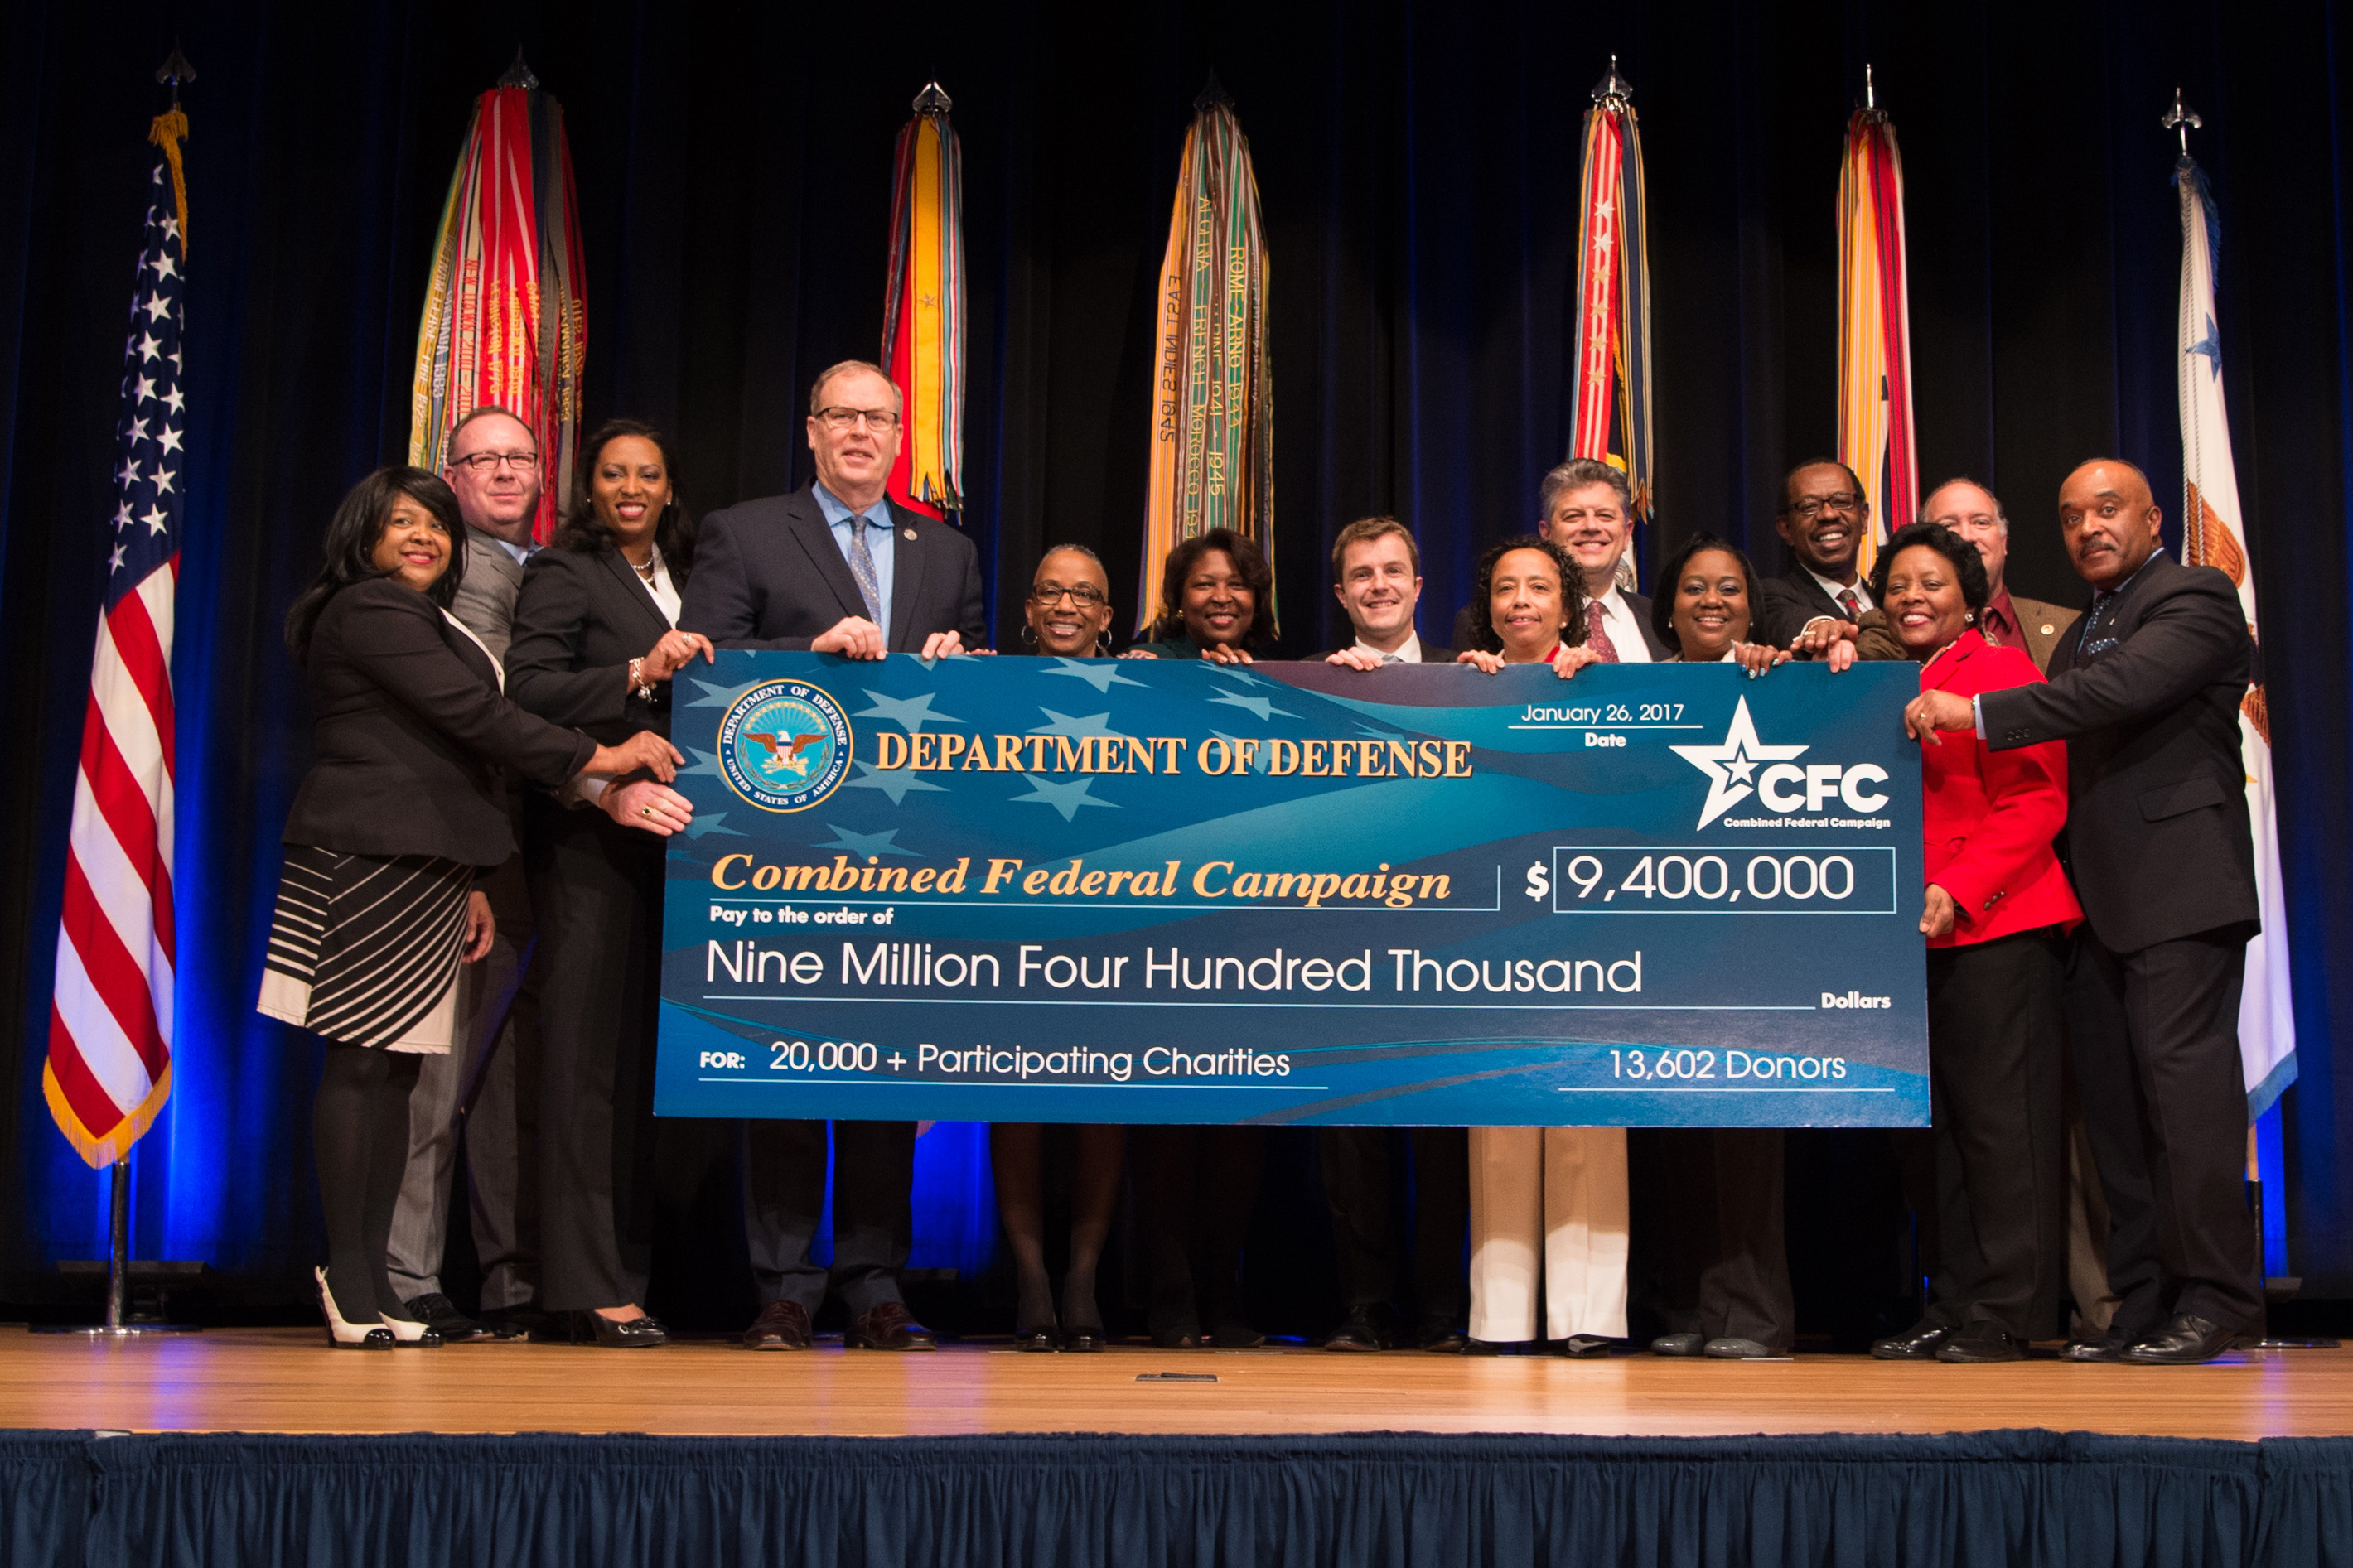 Deputy Defense Secretary Bob Work poses for a photo holding the check